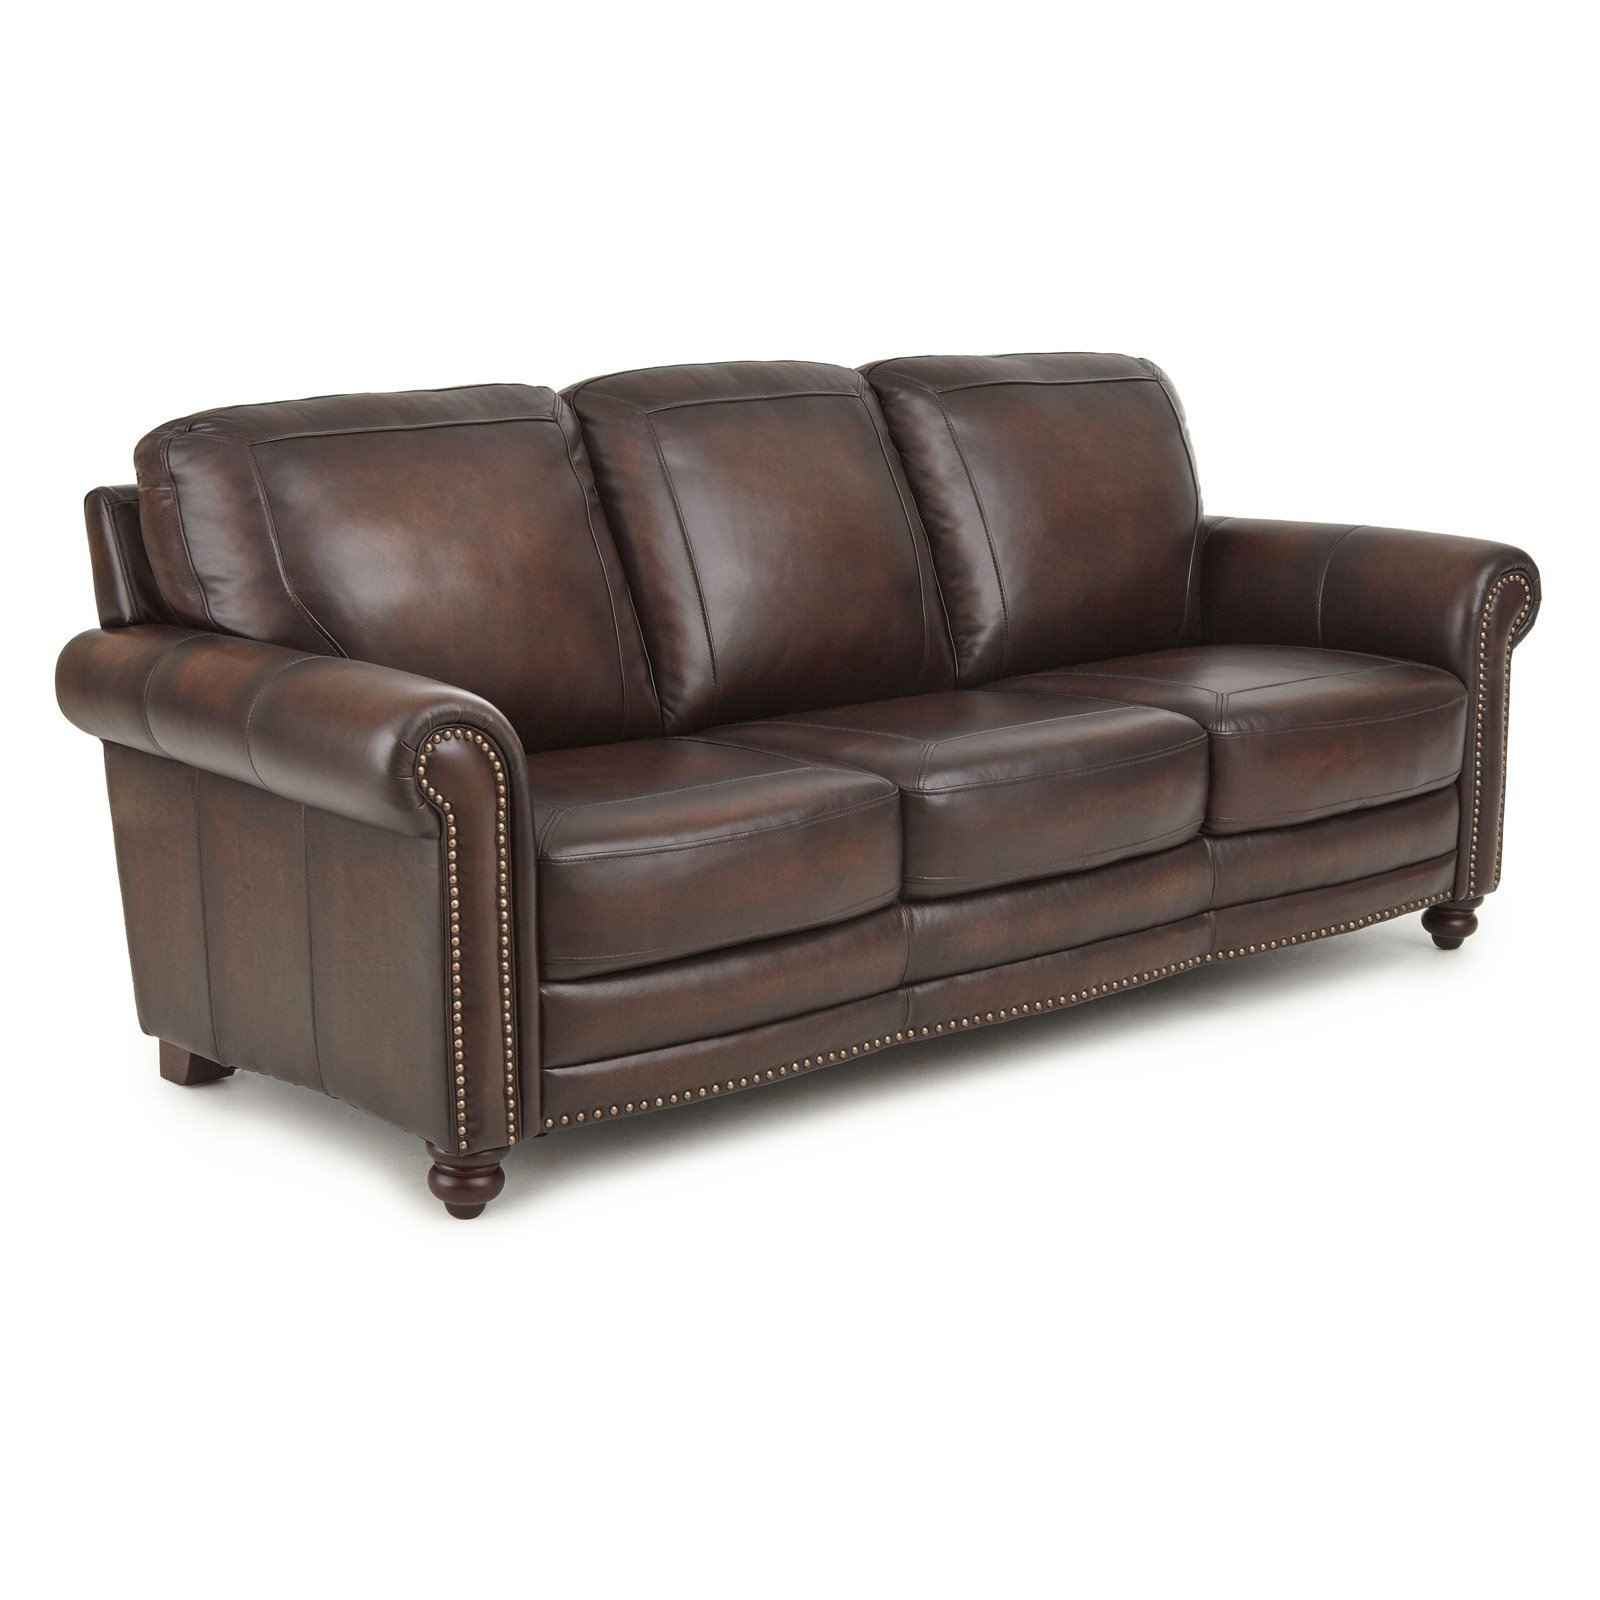 Steve Silver Co. Ellington Leather Sofa